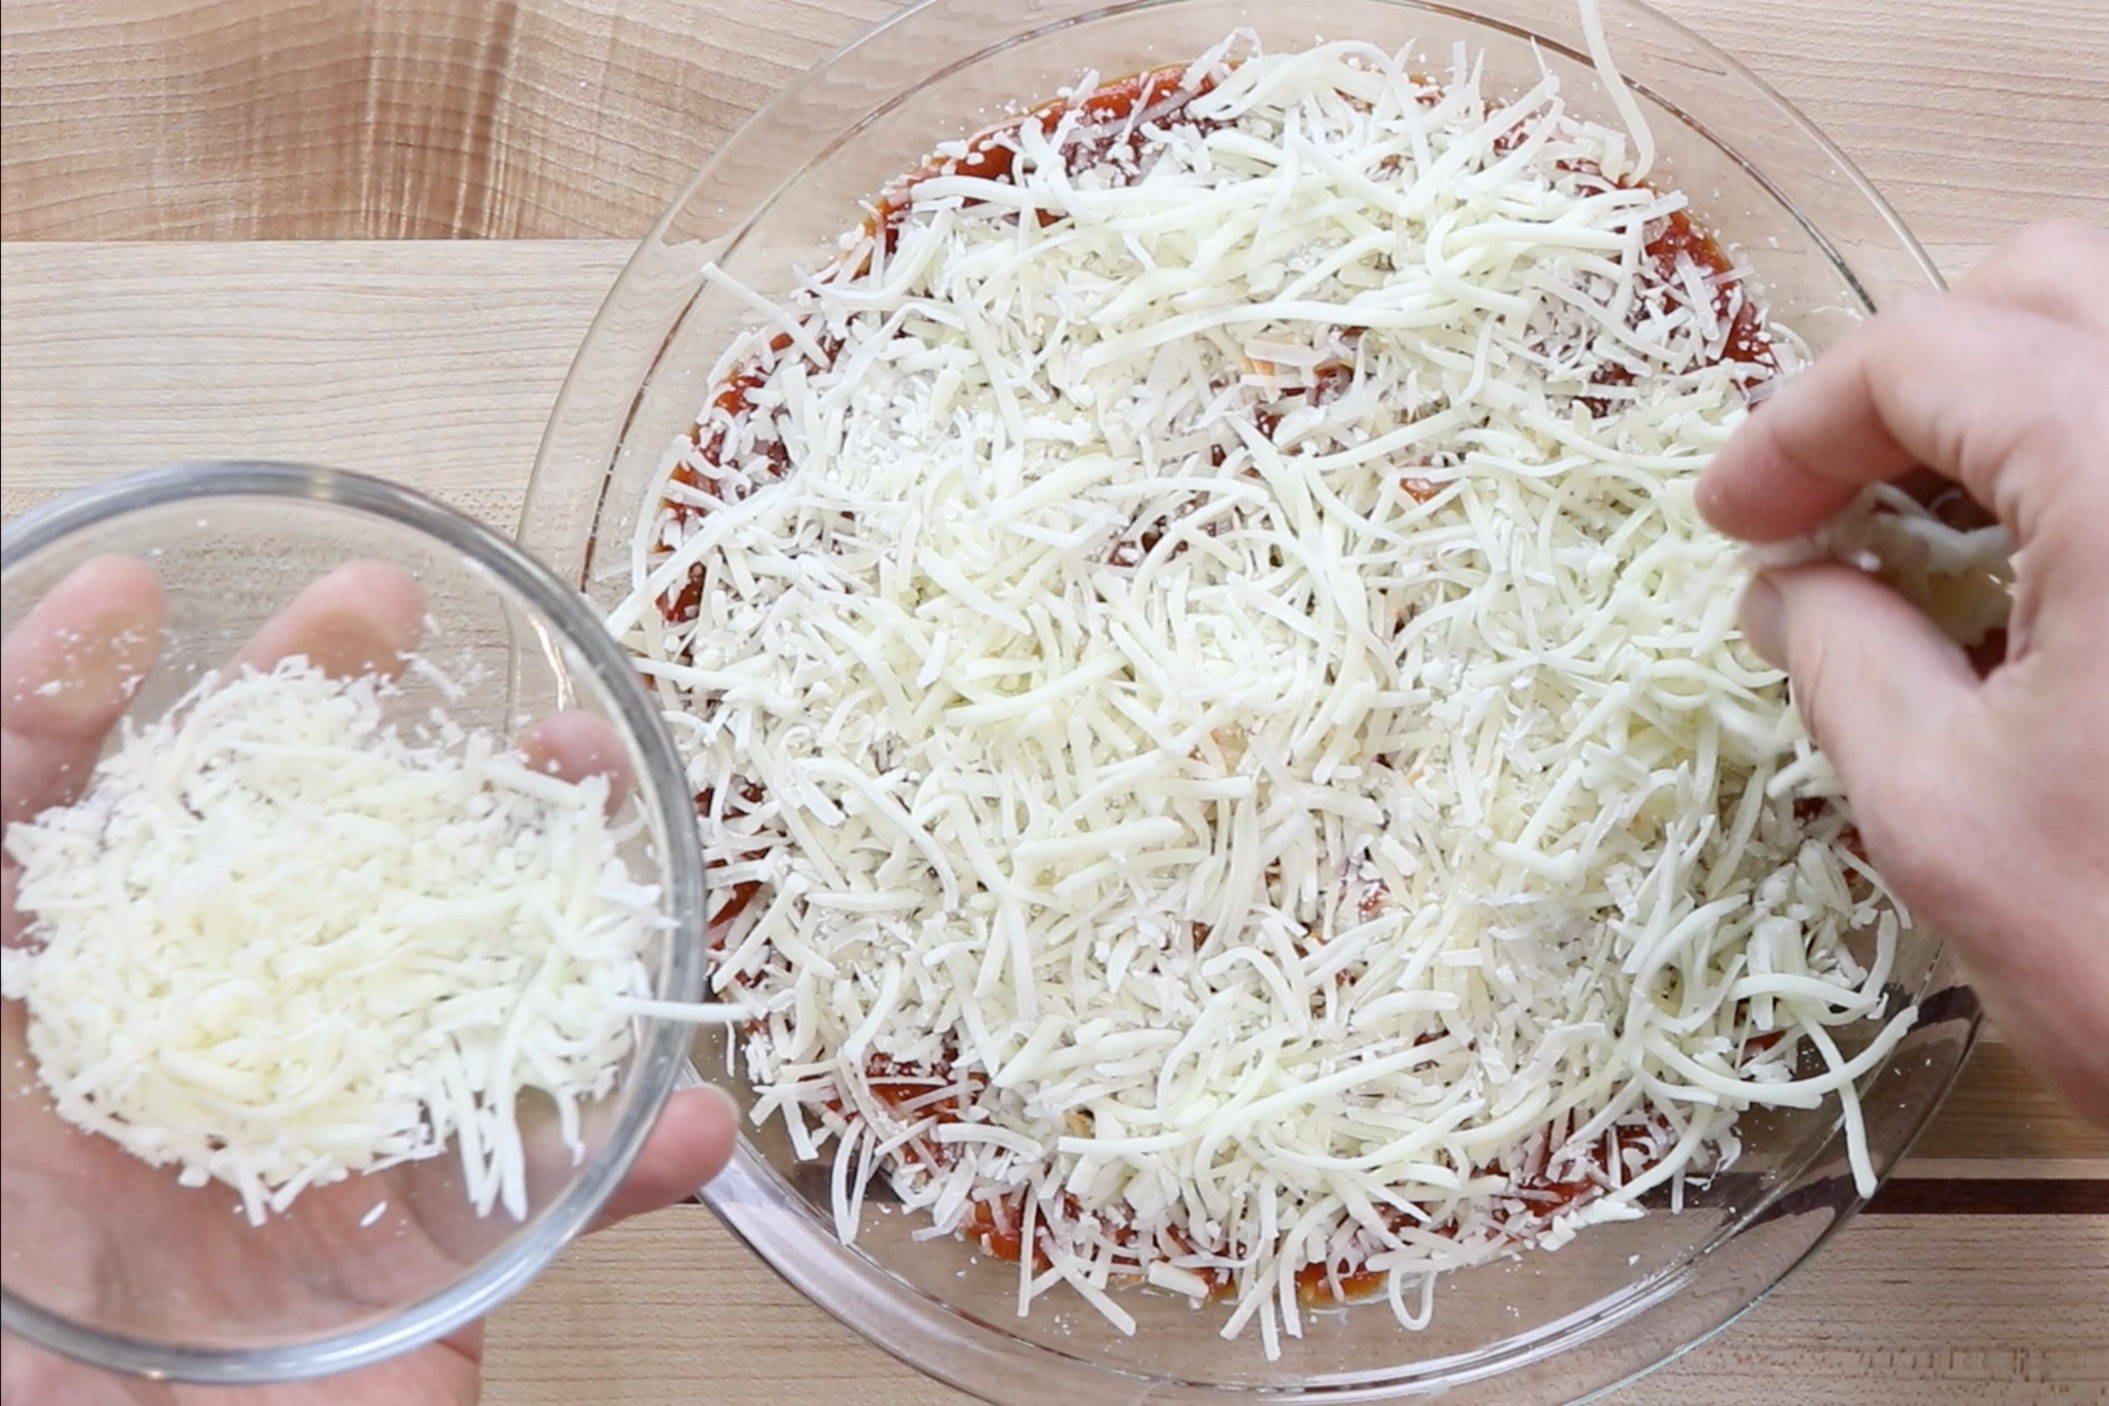 5. Sprinkle the remaining Parmesan cheese over the sauce followed by the rest of the Mozzarella. -